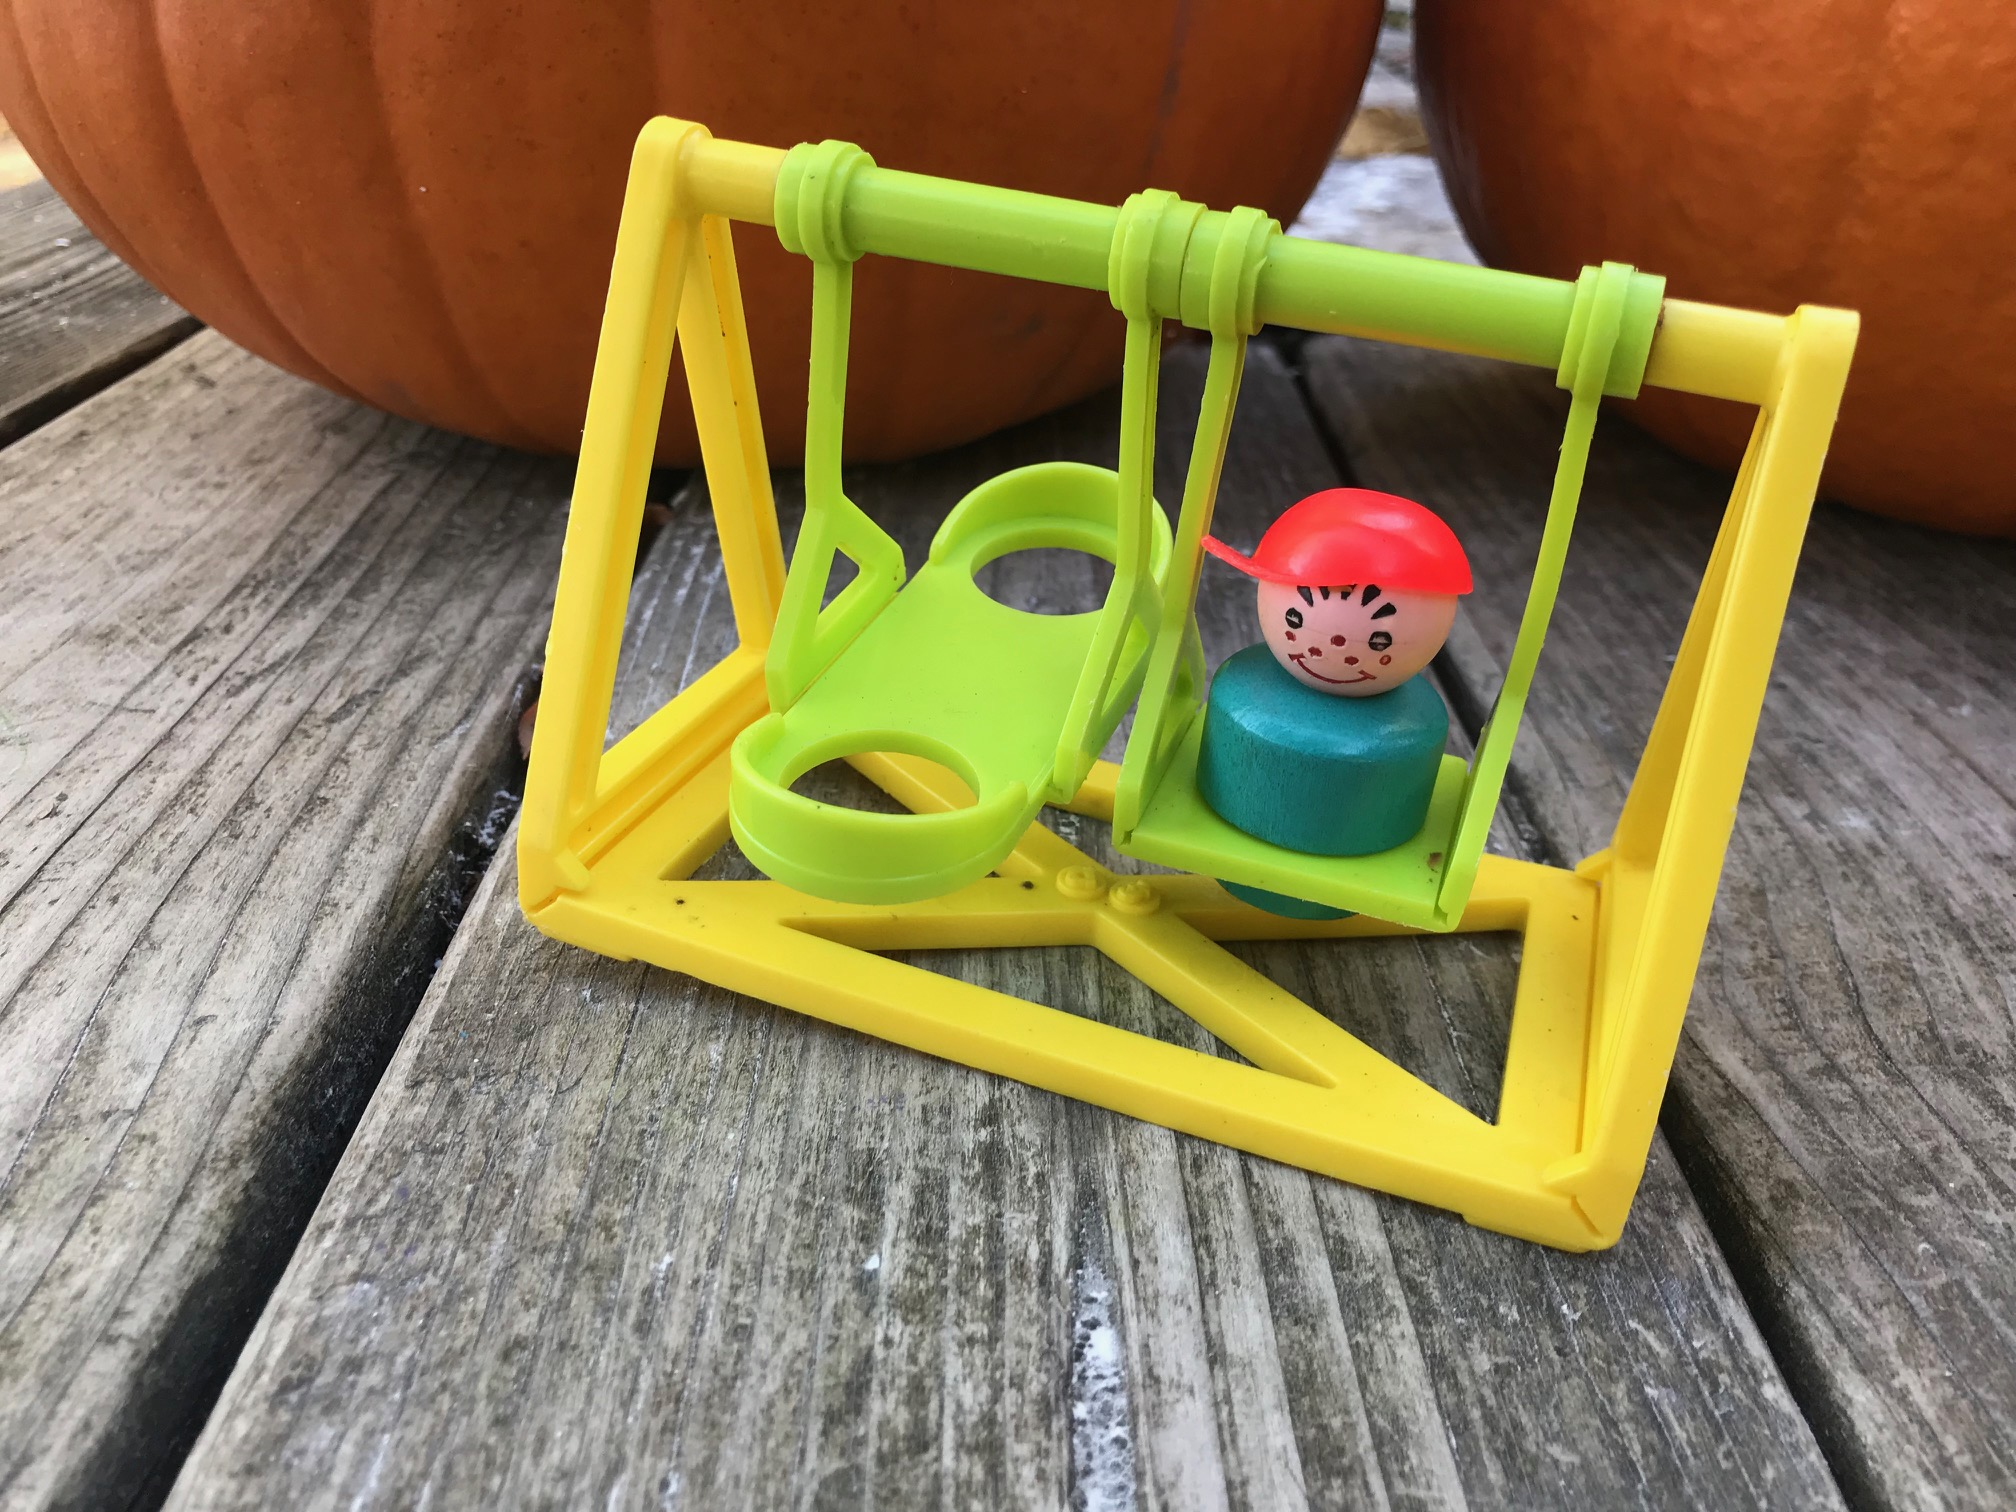 XRF [Heavy Metals Toxicity] Test Results for Vintage Fisher Price Little People Swingset